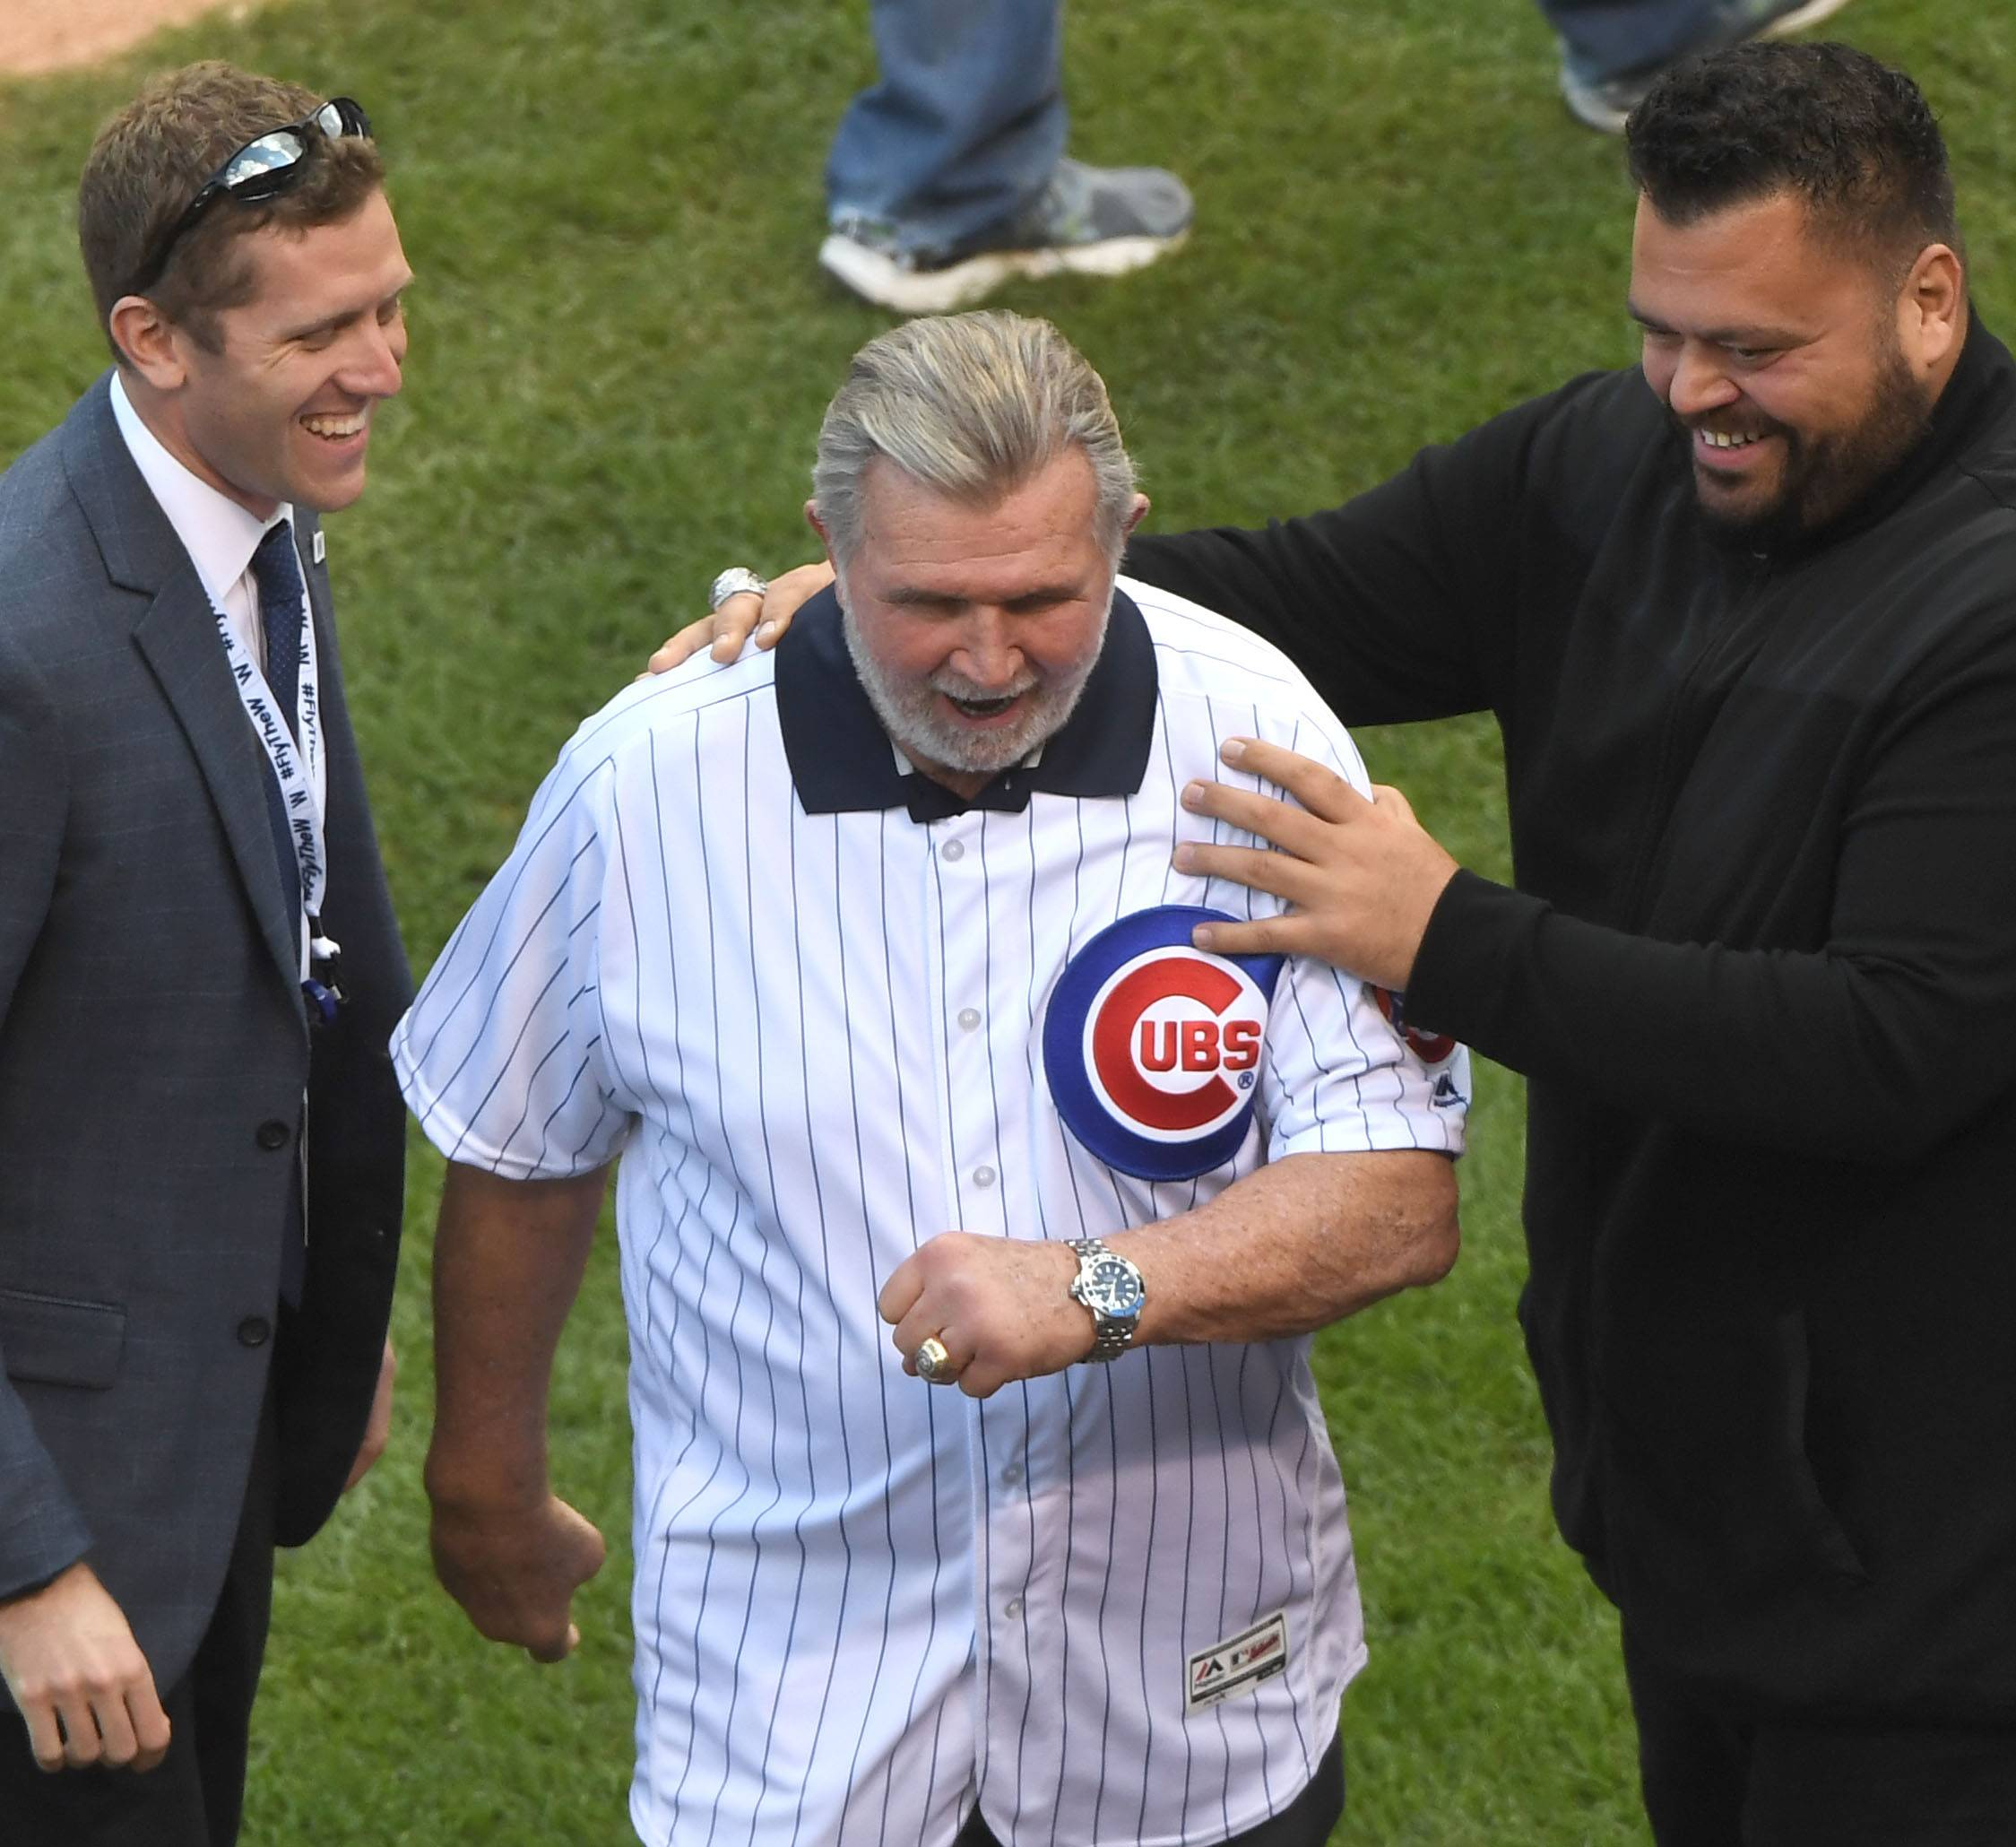 Mike Ditka, center, appears on the field before Game 3 of the NLDS at Wrigley Field in Chicago Monday.